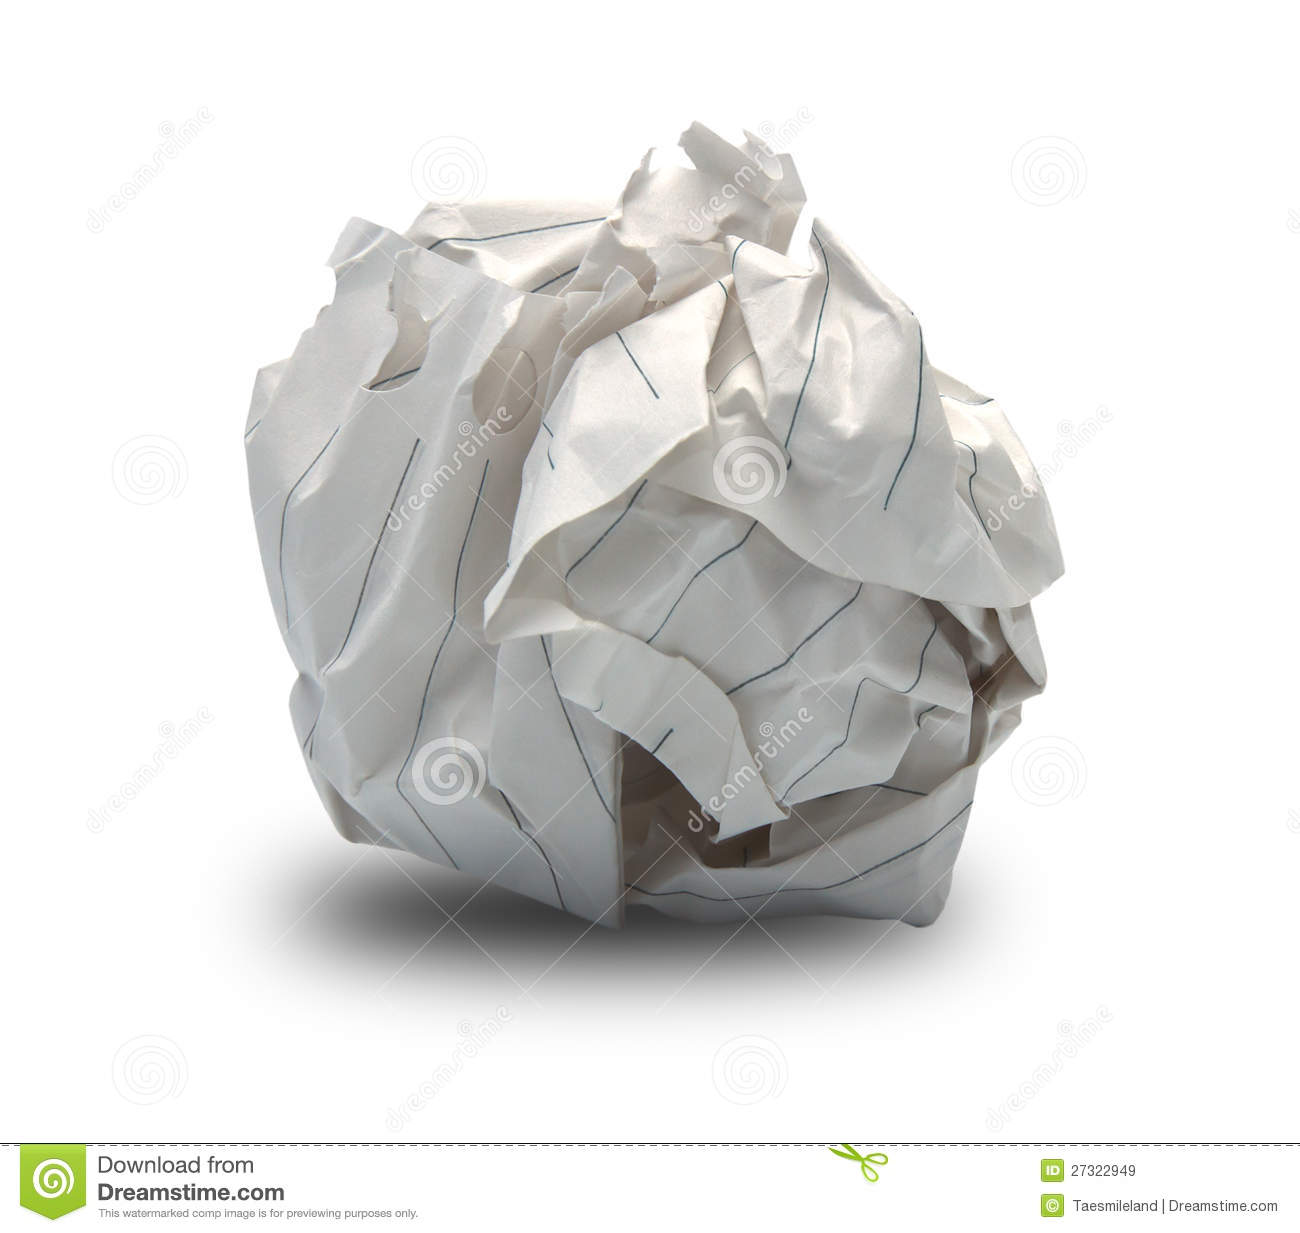 Crumpled up paper clipart.